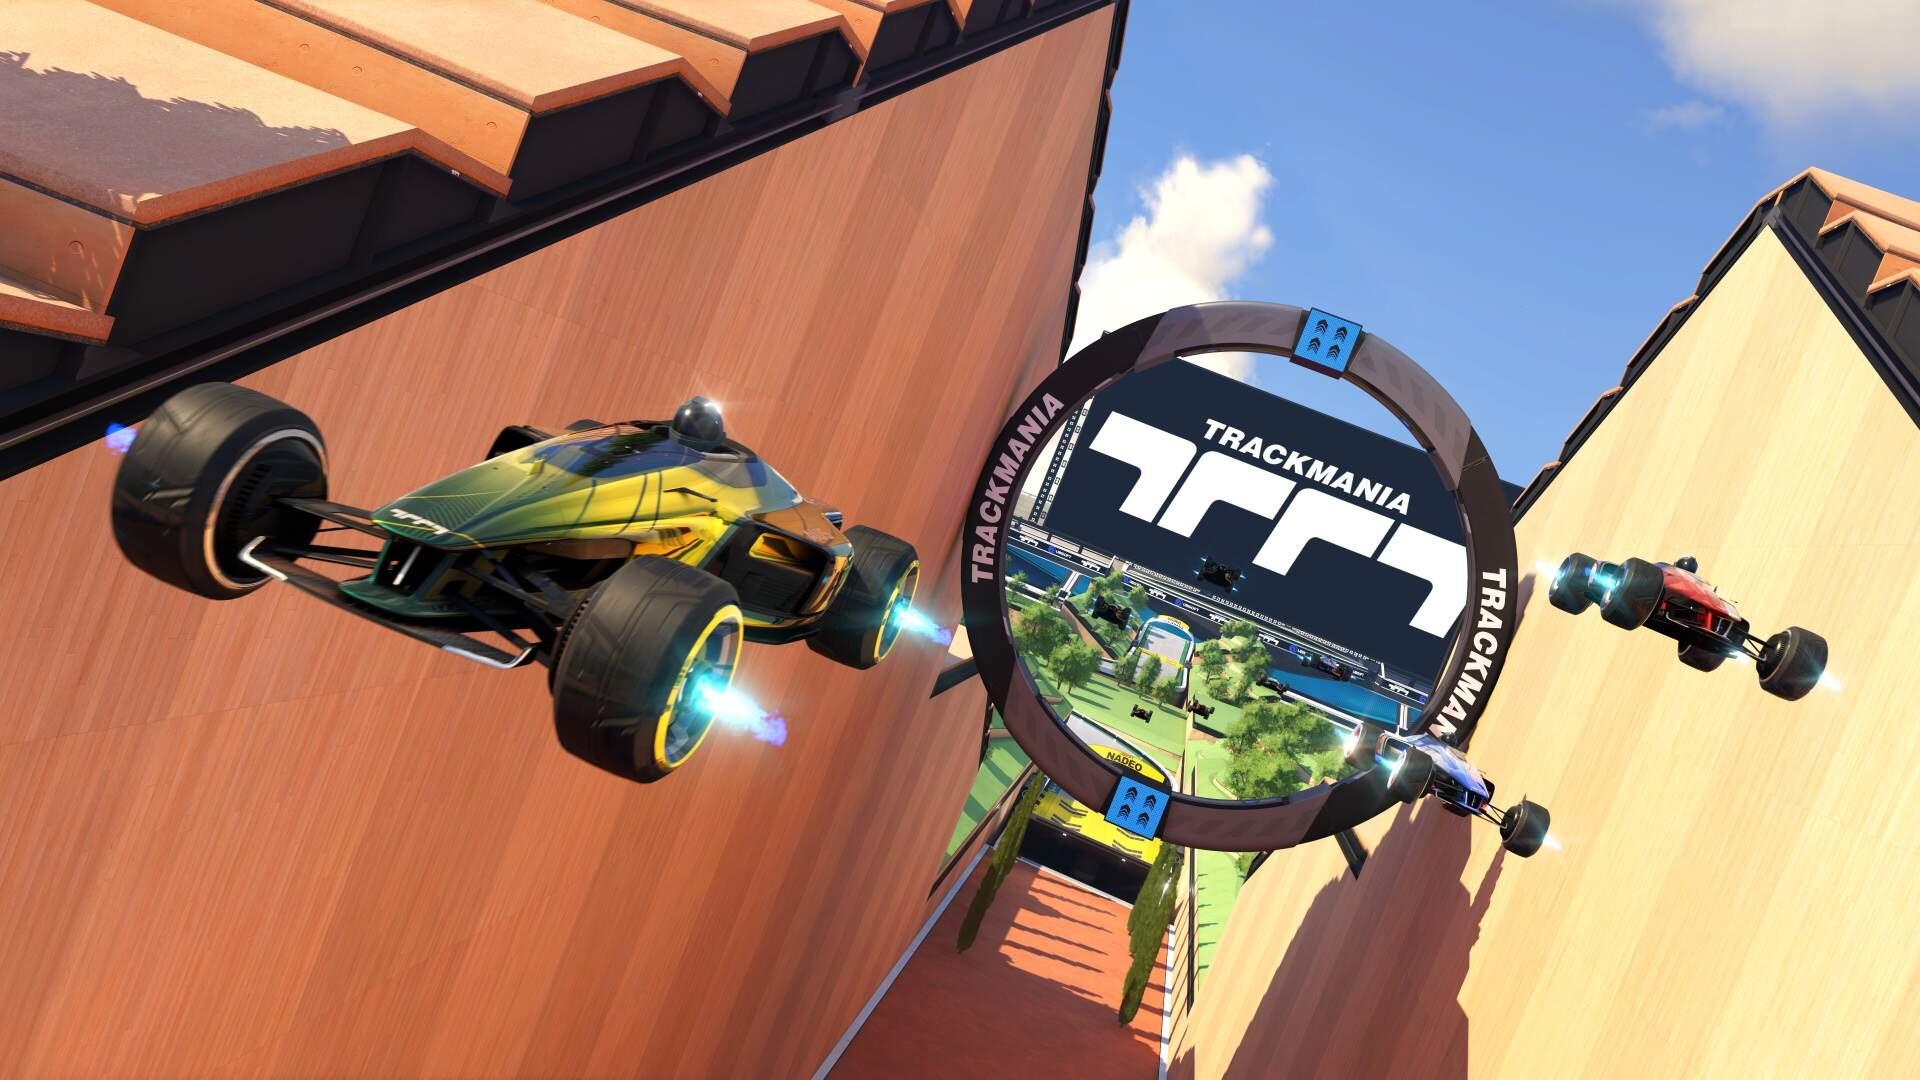 Trackmania 2020 Is a New Onramp For the Racing Series